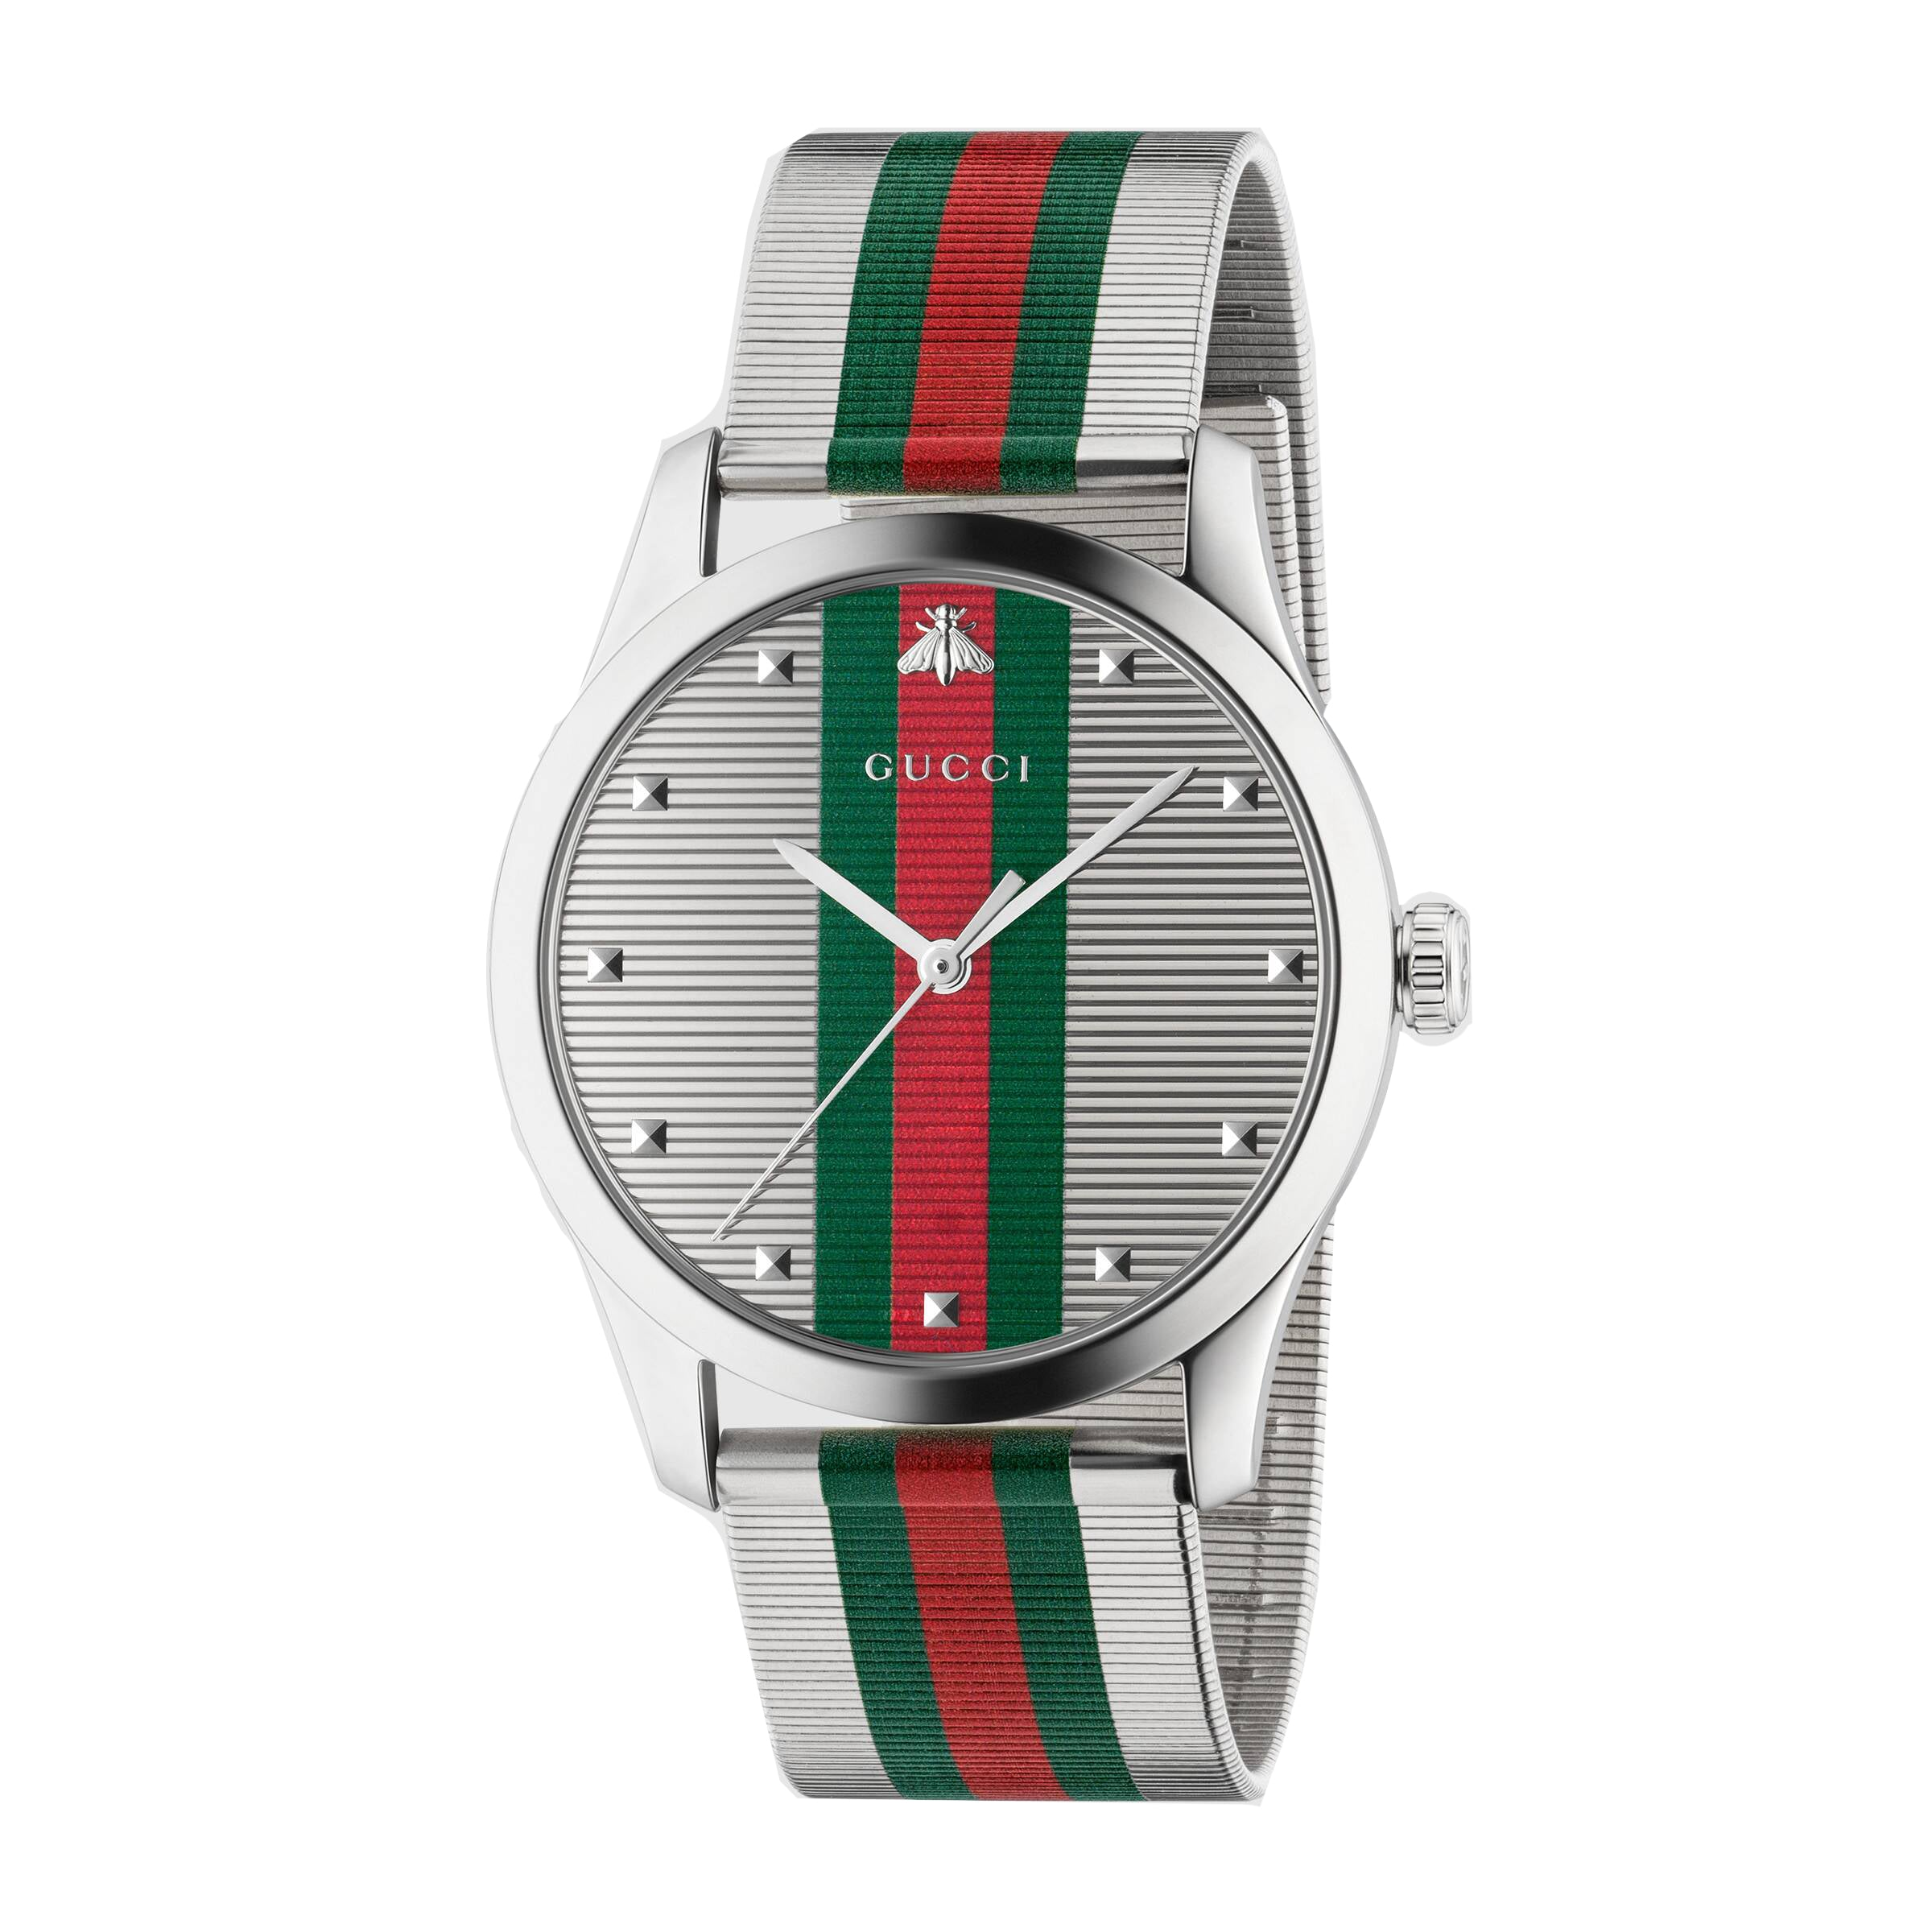 Gucci G-Timeless 42mm Watch with House Web Stripe Dial